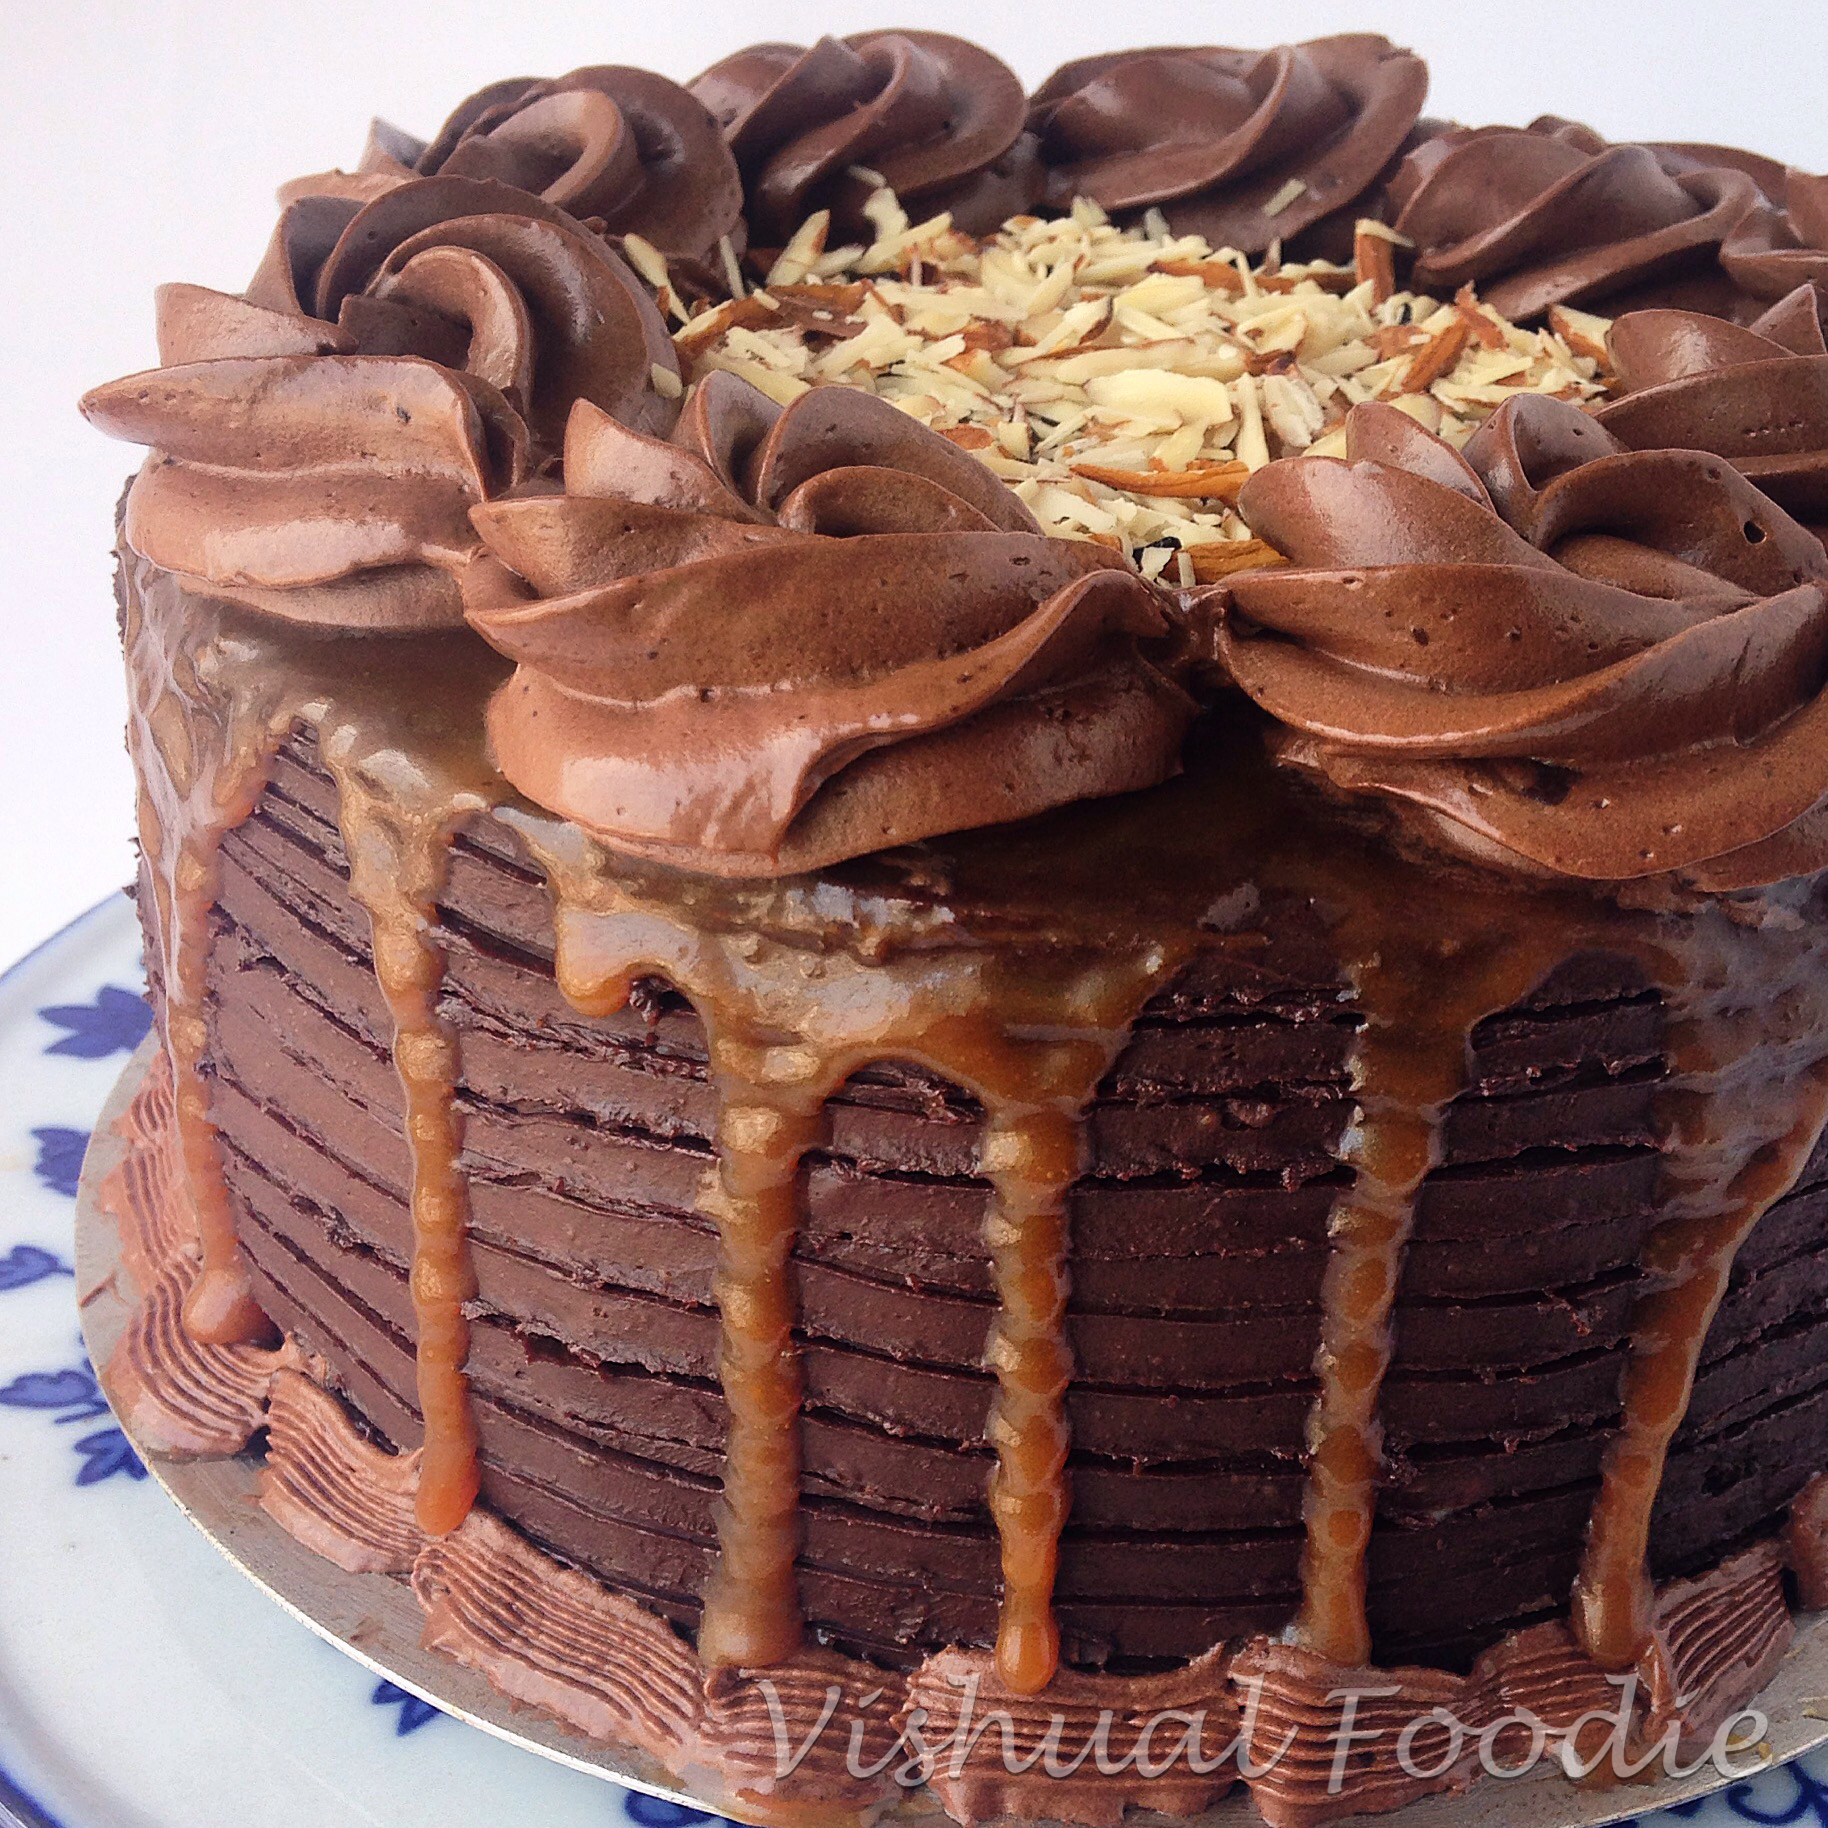 Chocolate Cake Caramel Filling Chocolate Ganache